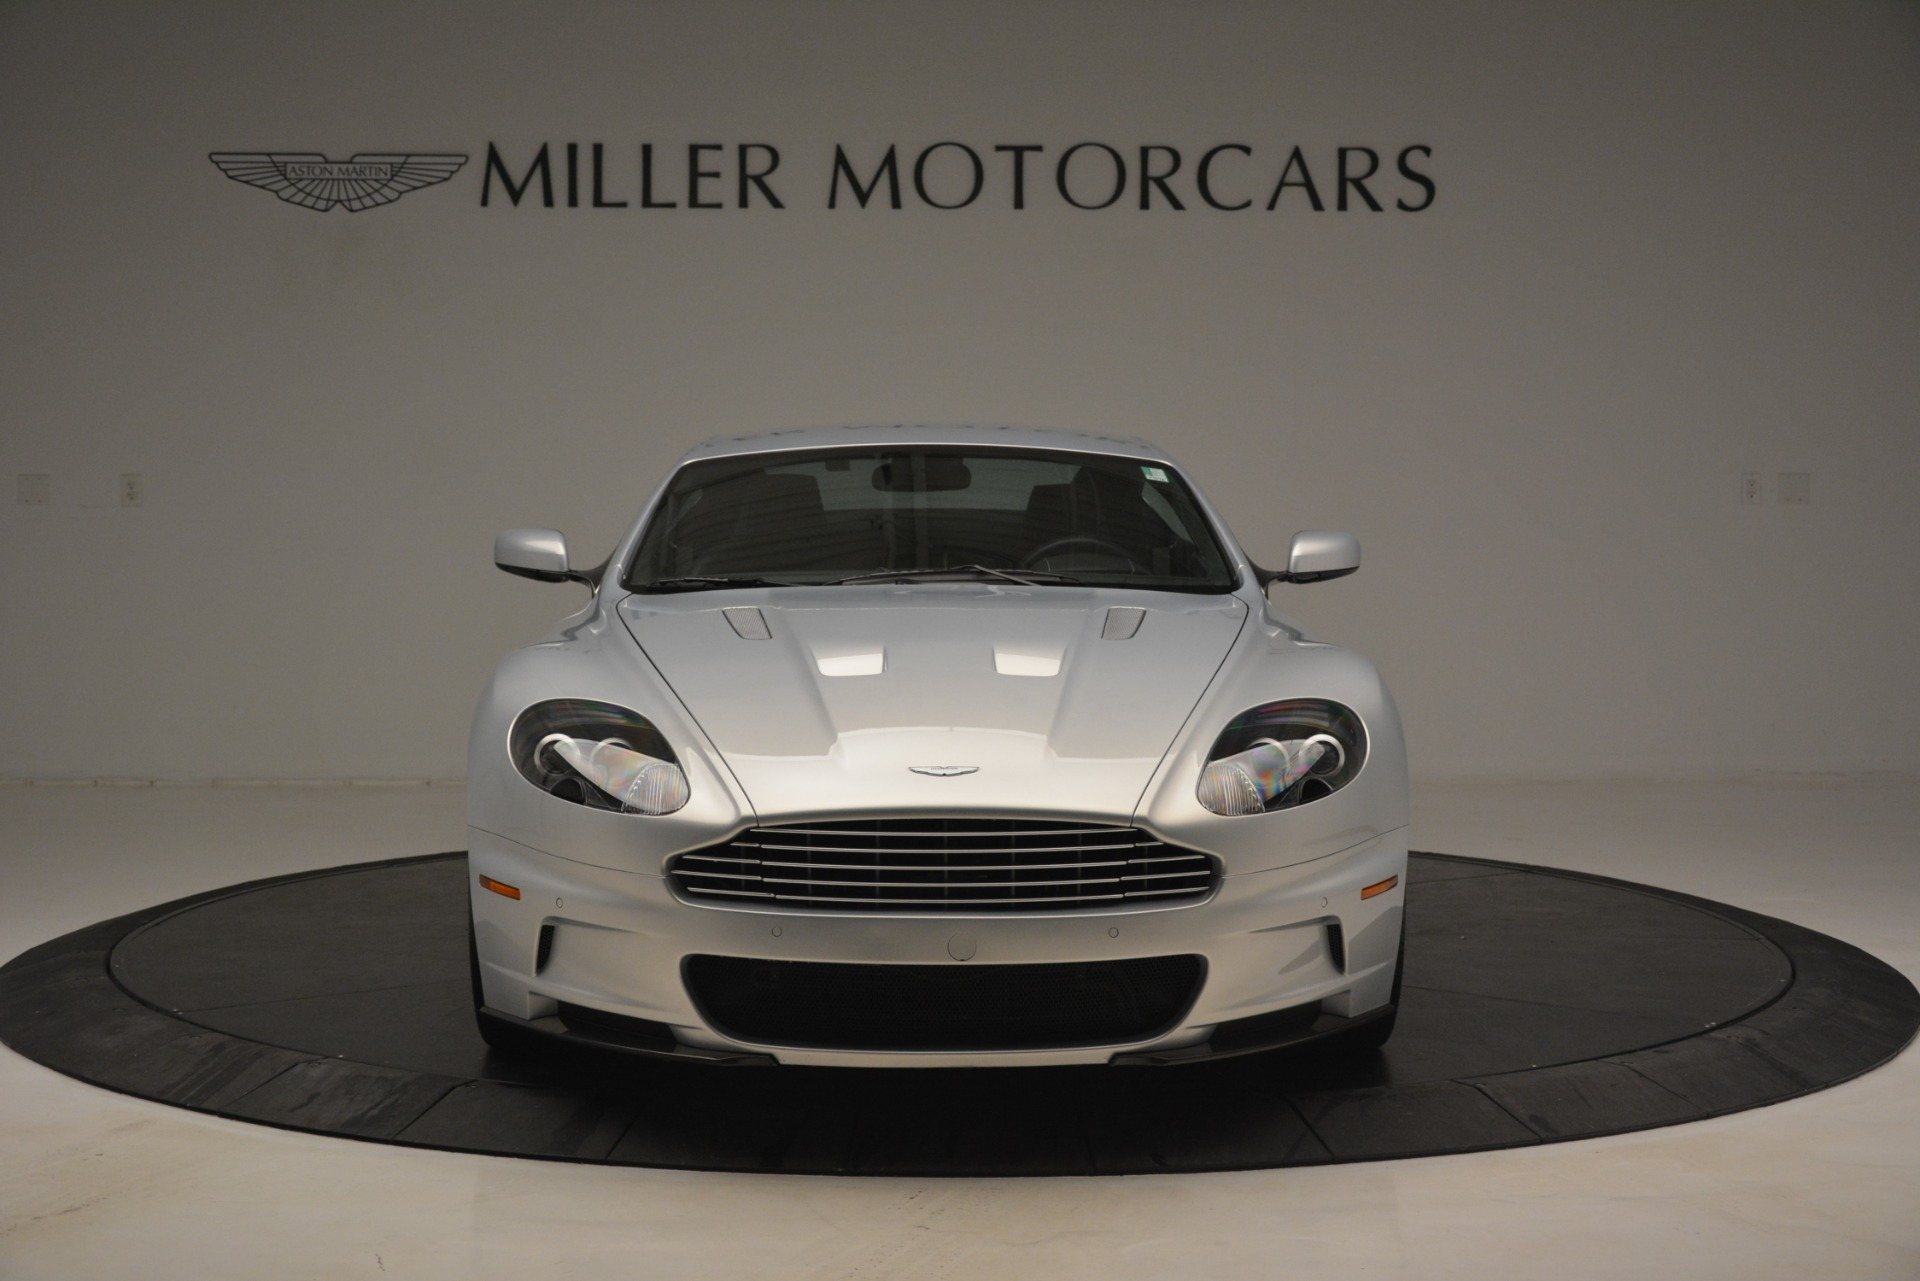 Used 2009 Aston Martin DBS Coupe For Sale In Westport, CT 3033_p12